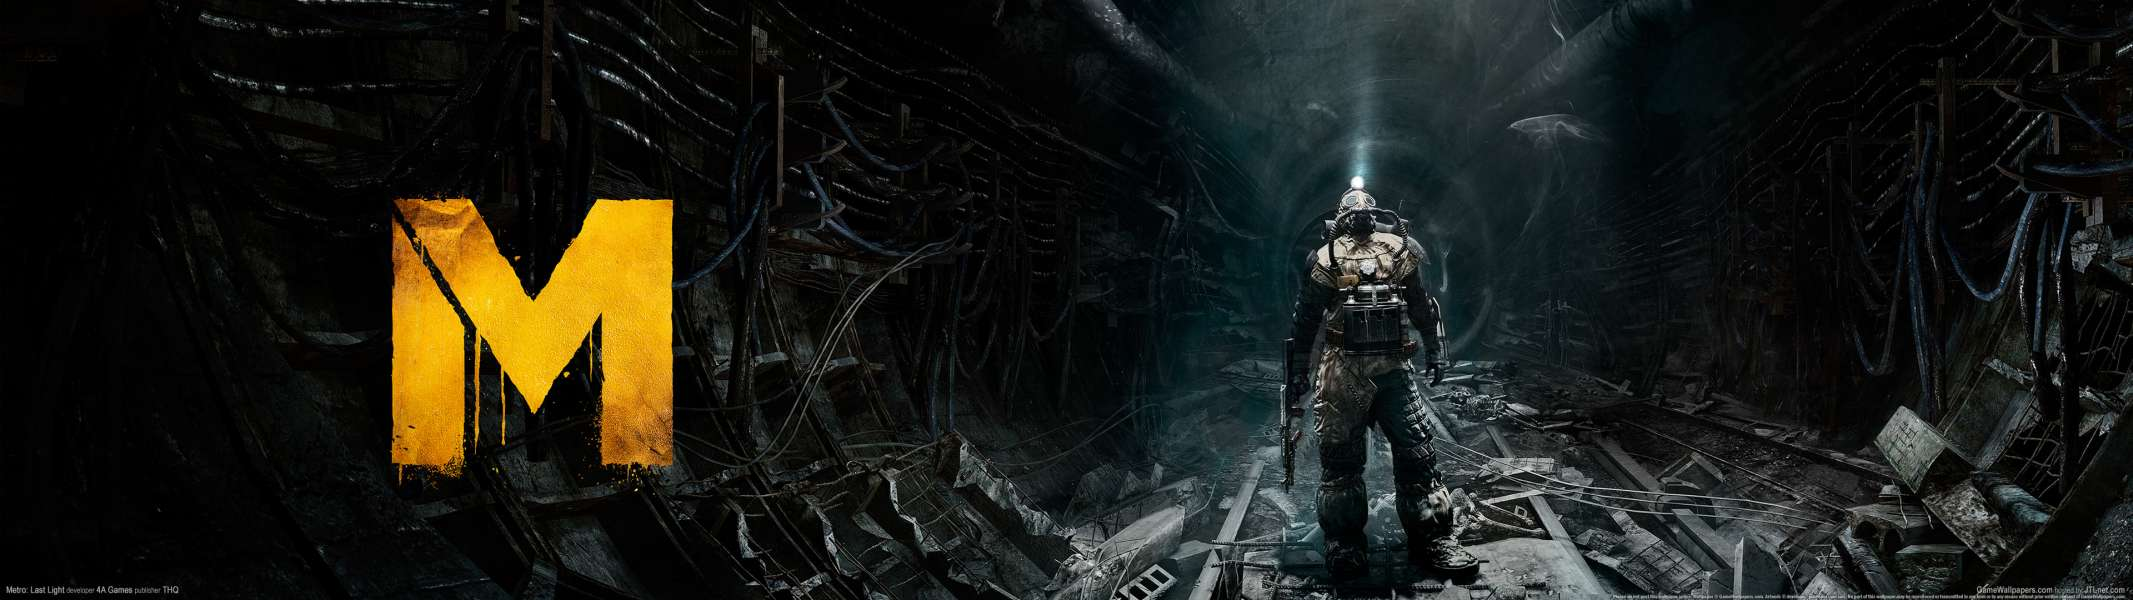 Metro: Last Light dual screen wallpaper or background